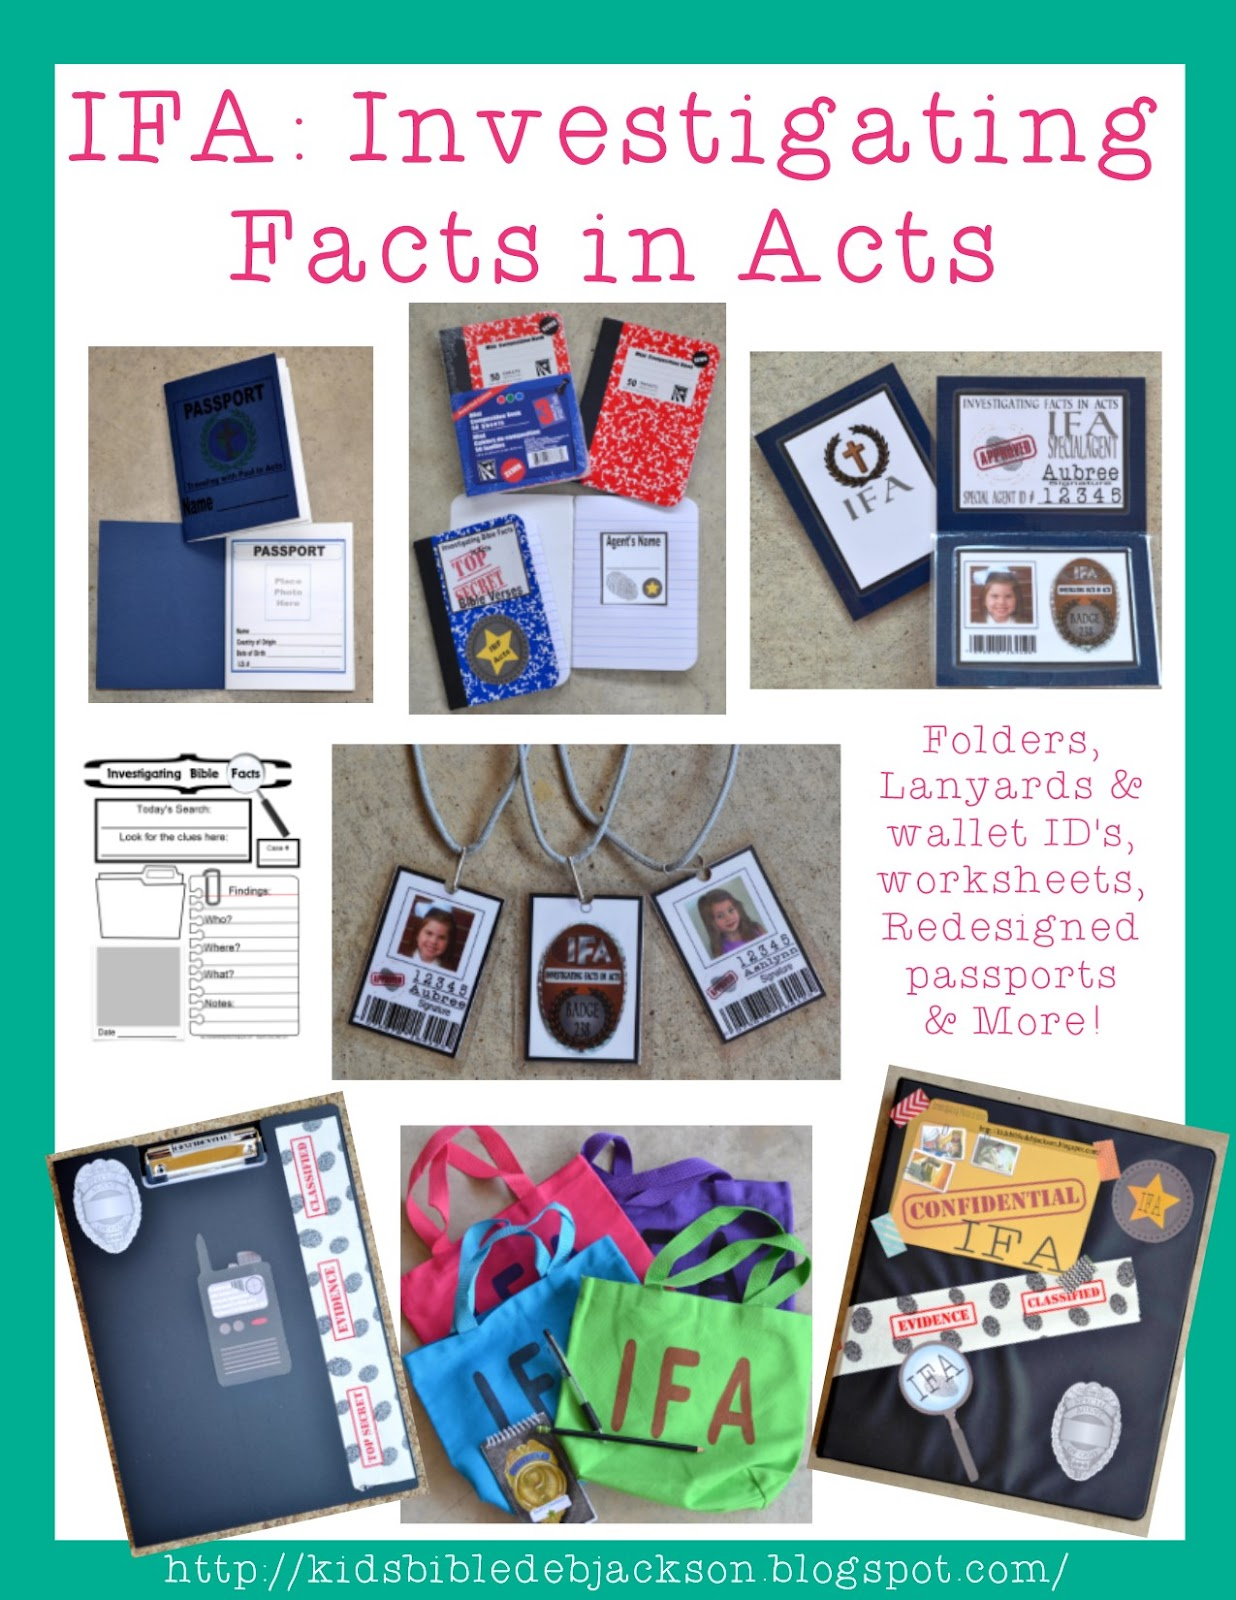 http://kidsbibledebjackson.blogspot.com/2014/10/ifa-investigating-bible-facts-in-acts.html